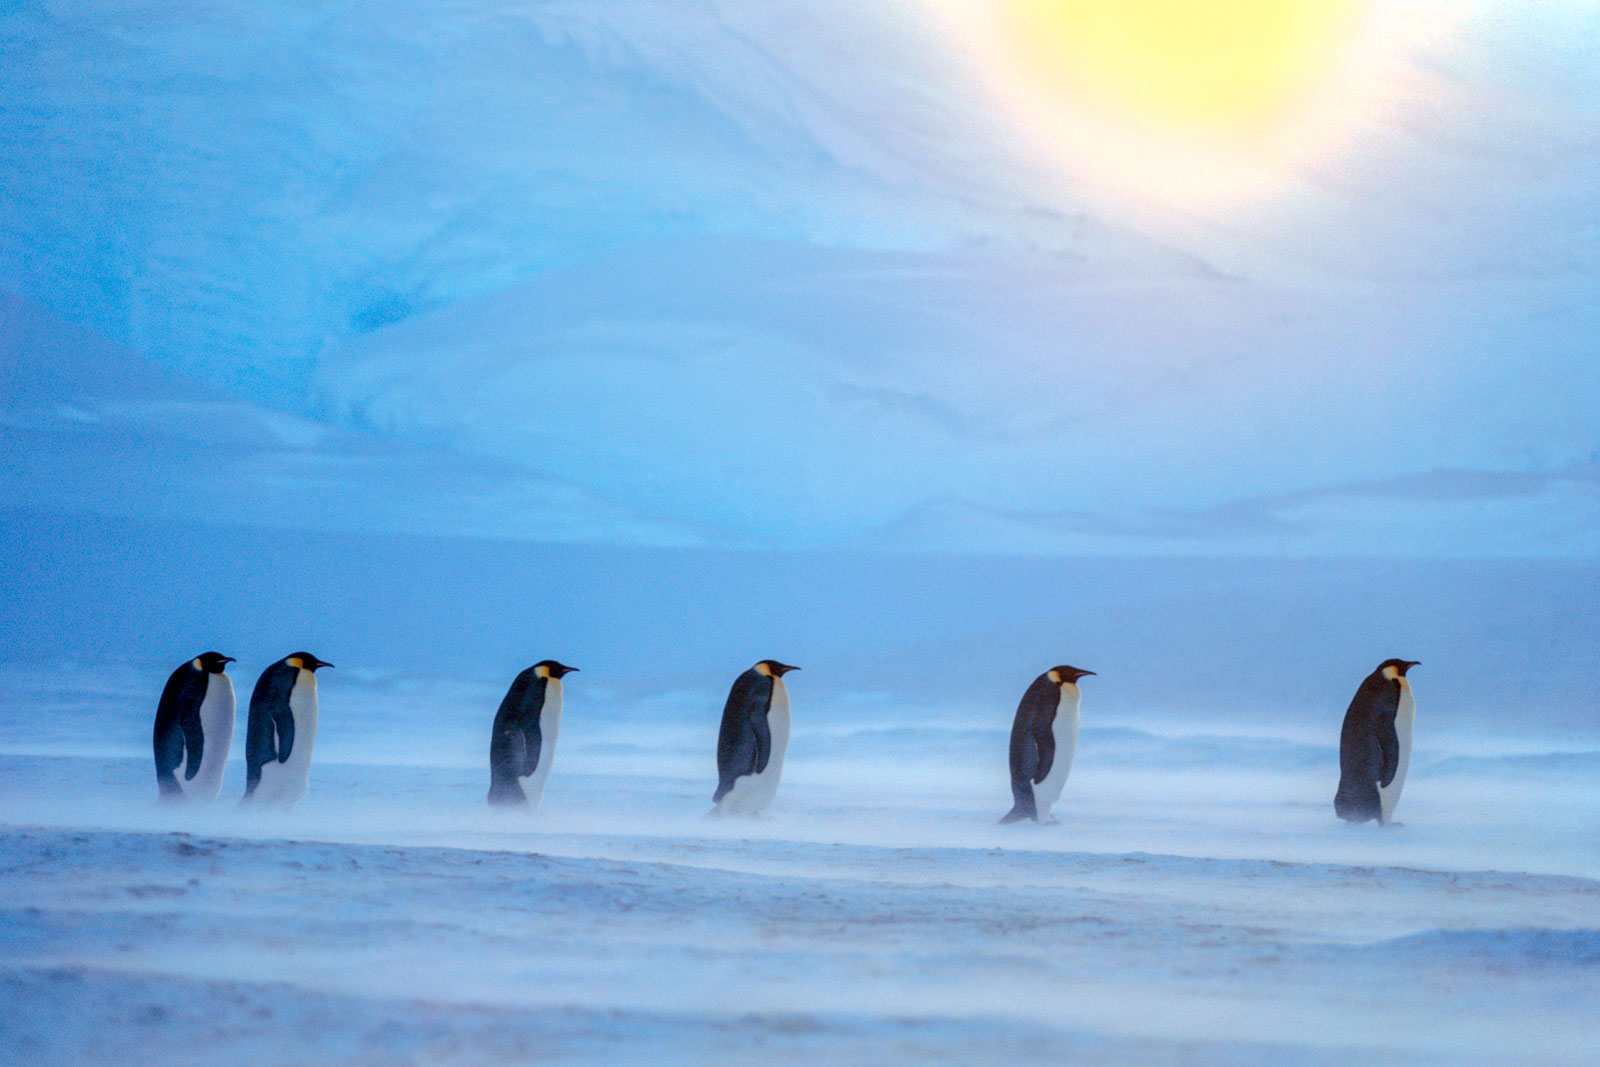 Emperor penguins in blizzard, Weddell sea, Antarctica